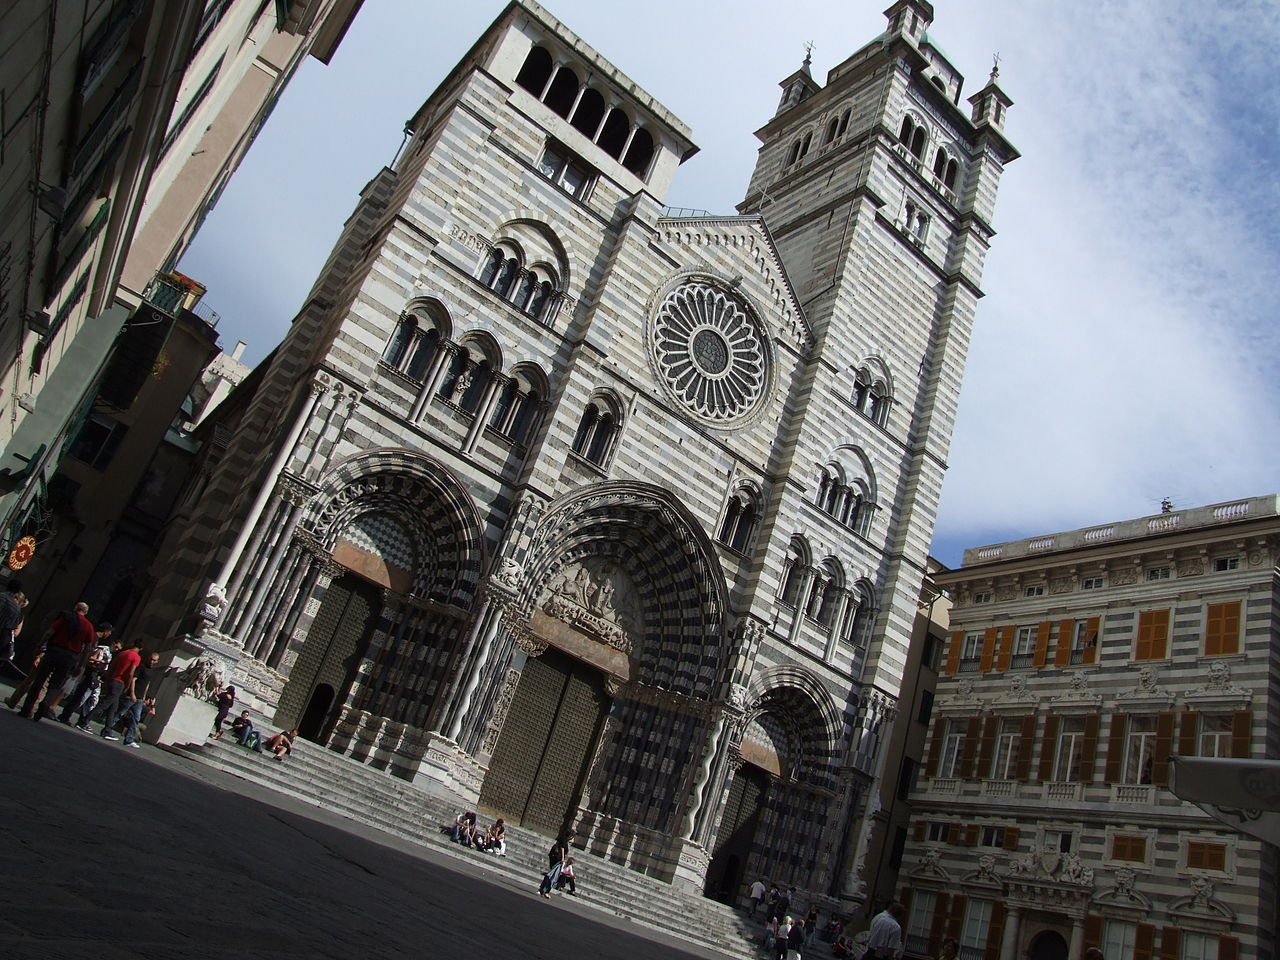 1280px-Cathedral_San_Lorenzo_Genova_Liguria_Italy_-_Creative_Commons_by_gnuckx_(3619643426)